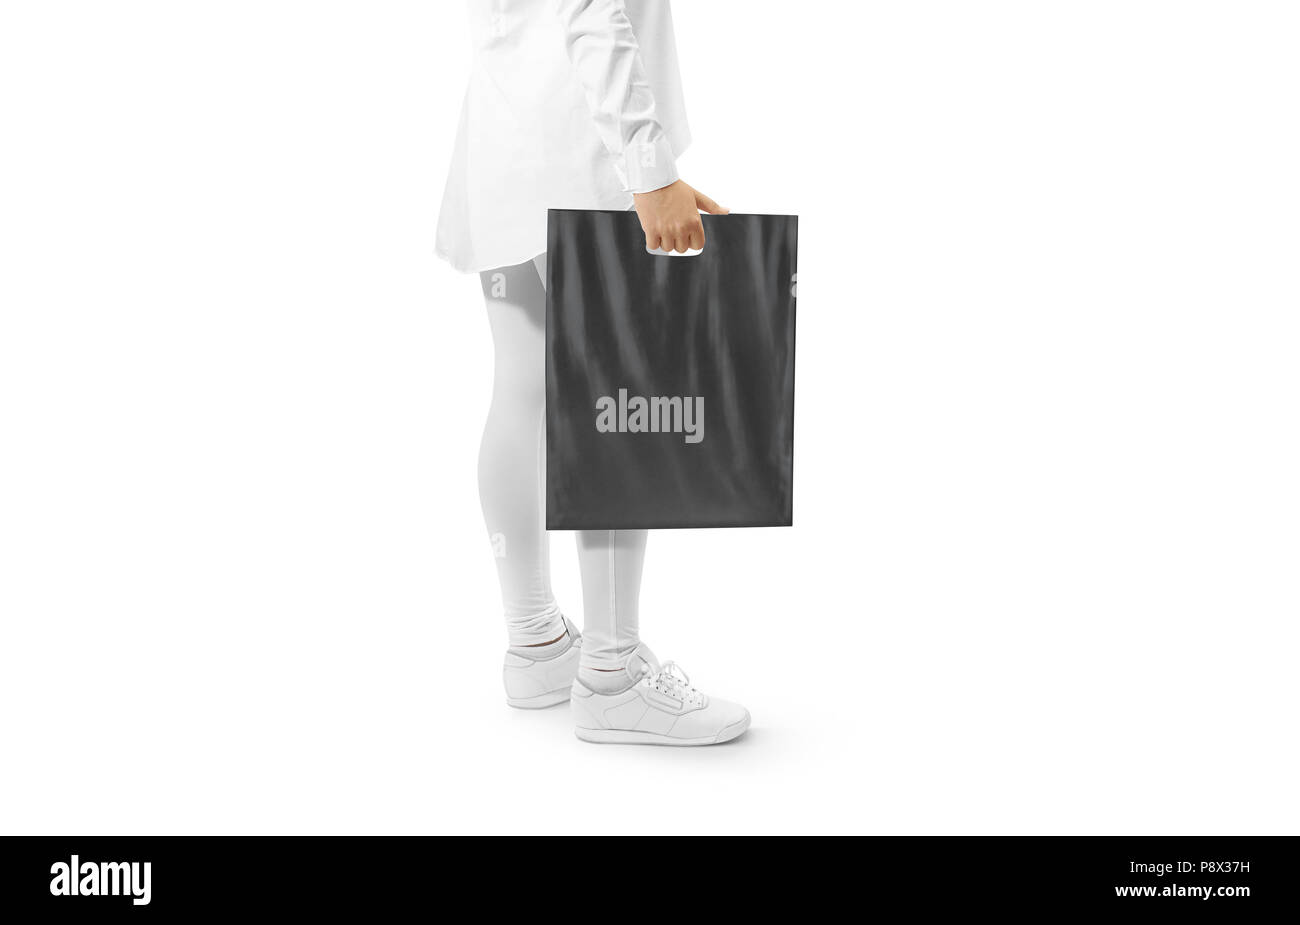 This paper bag mockup assures great stylish paper bags that you can modify easily with your own specified text paper bag template free download. Blank Black Plastic Bag Mockup Holding Hand Woman Hold Dark Carrier Sac Mock Up Grey Bagful Branding Template Shopping Carry Package In Persons Arm Stock Photo Alamy